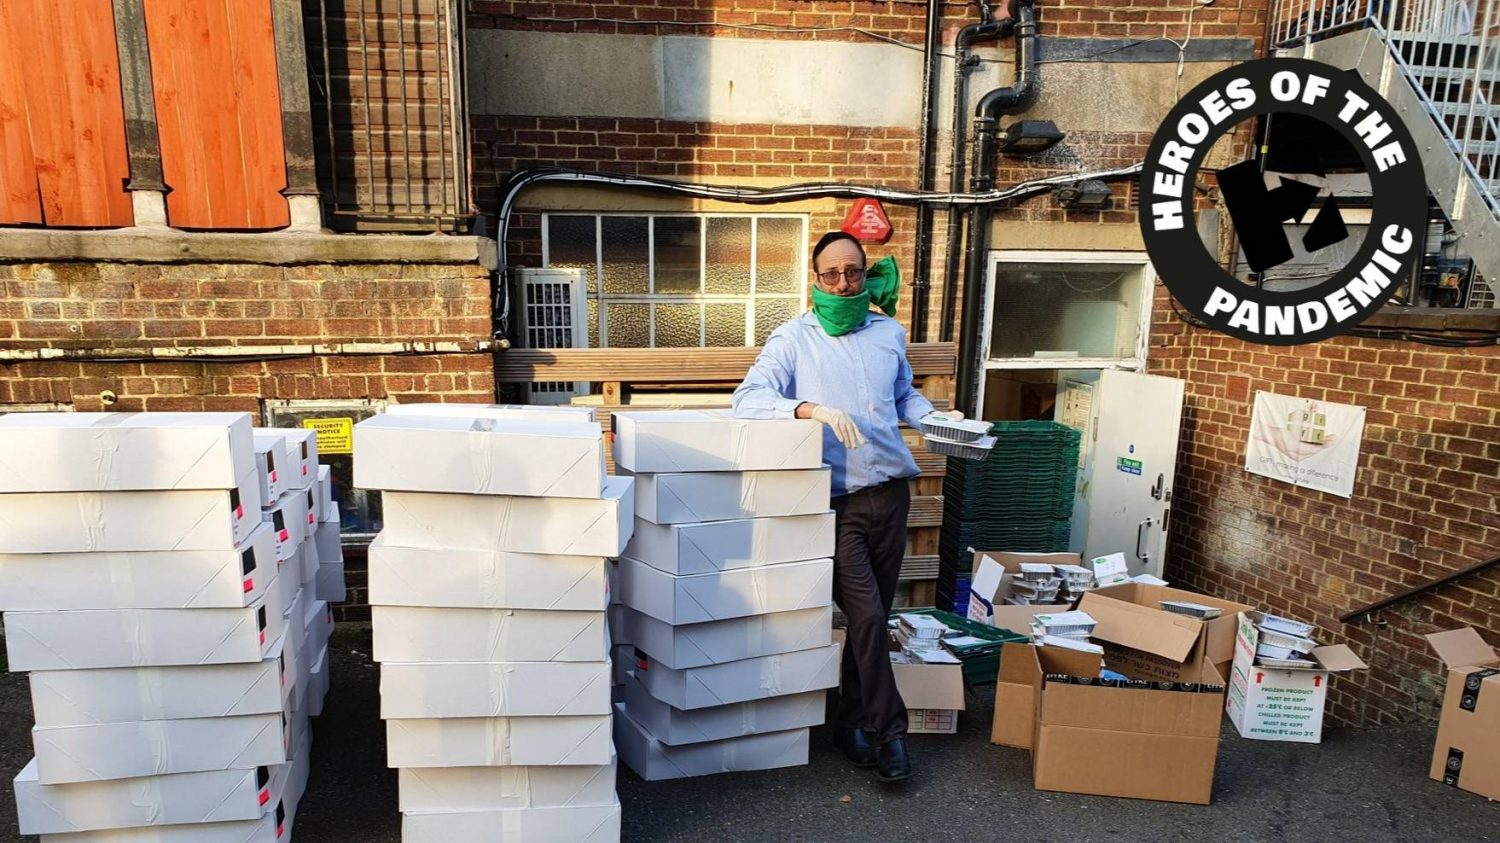 jewish charity delivers over 13,500 meals to vulnerable families during pandemic